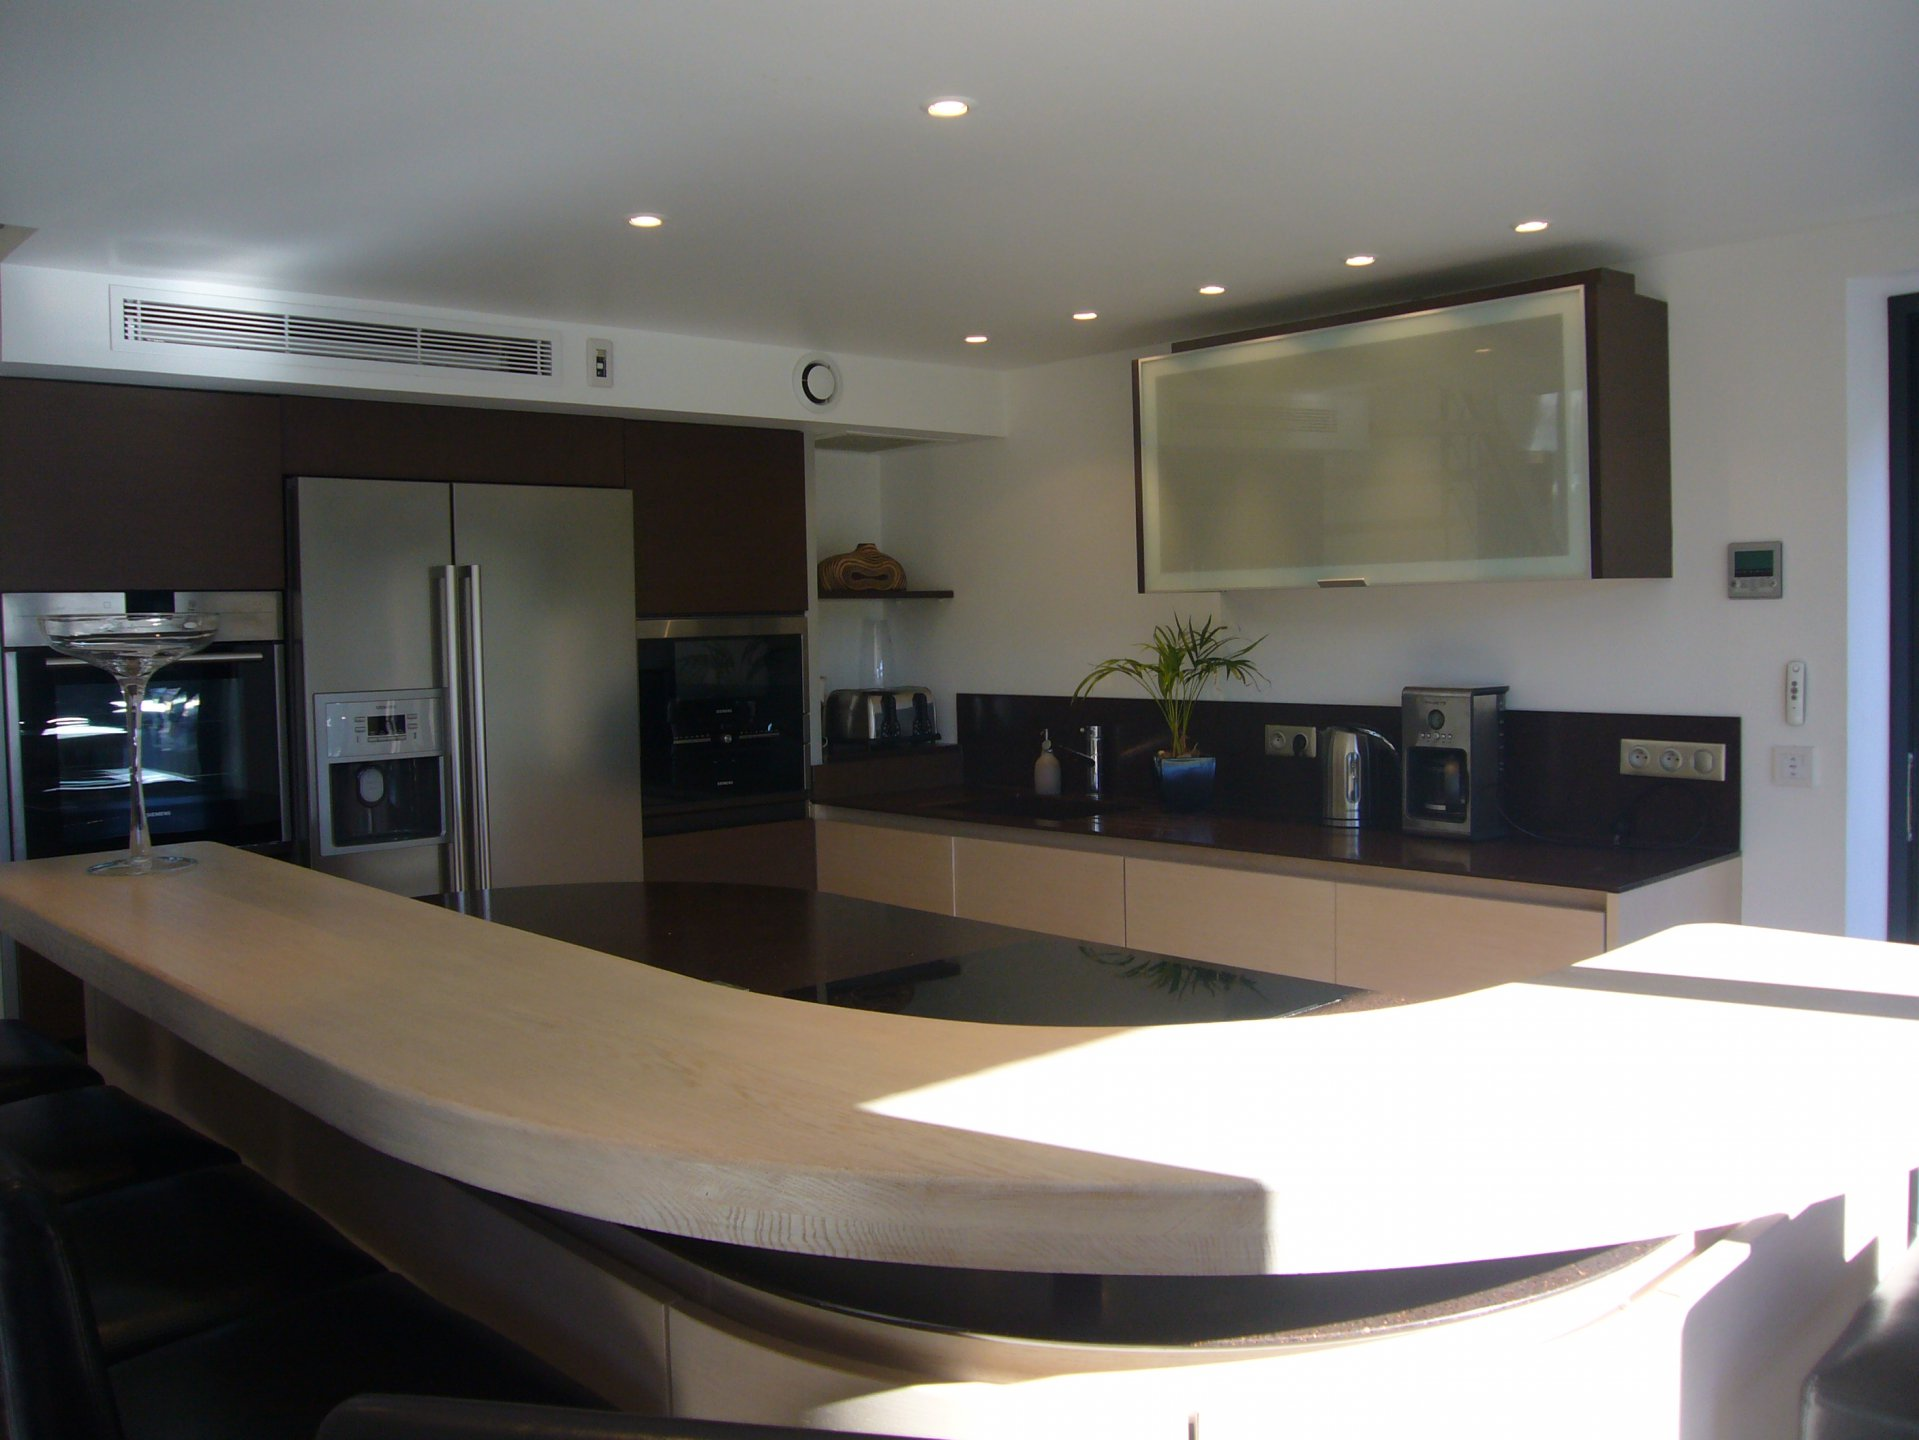 Stainless steel, kitchen bar